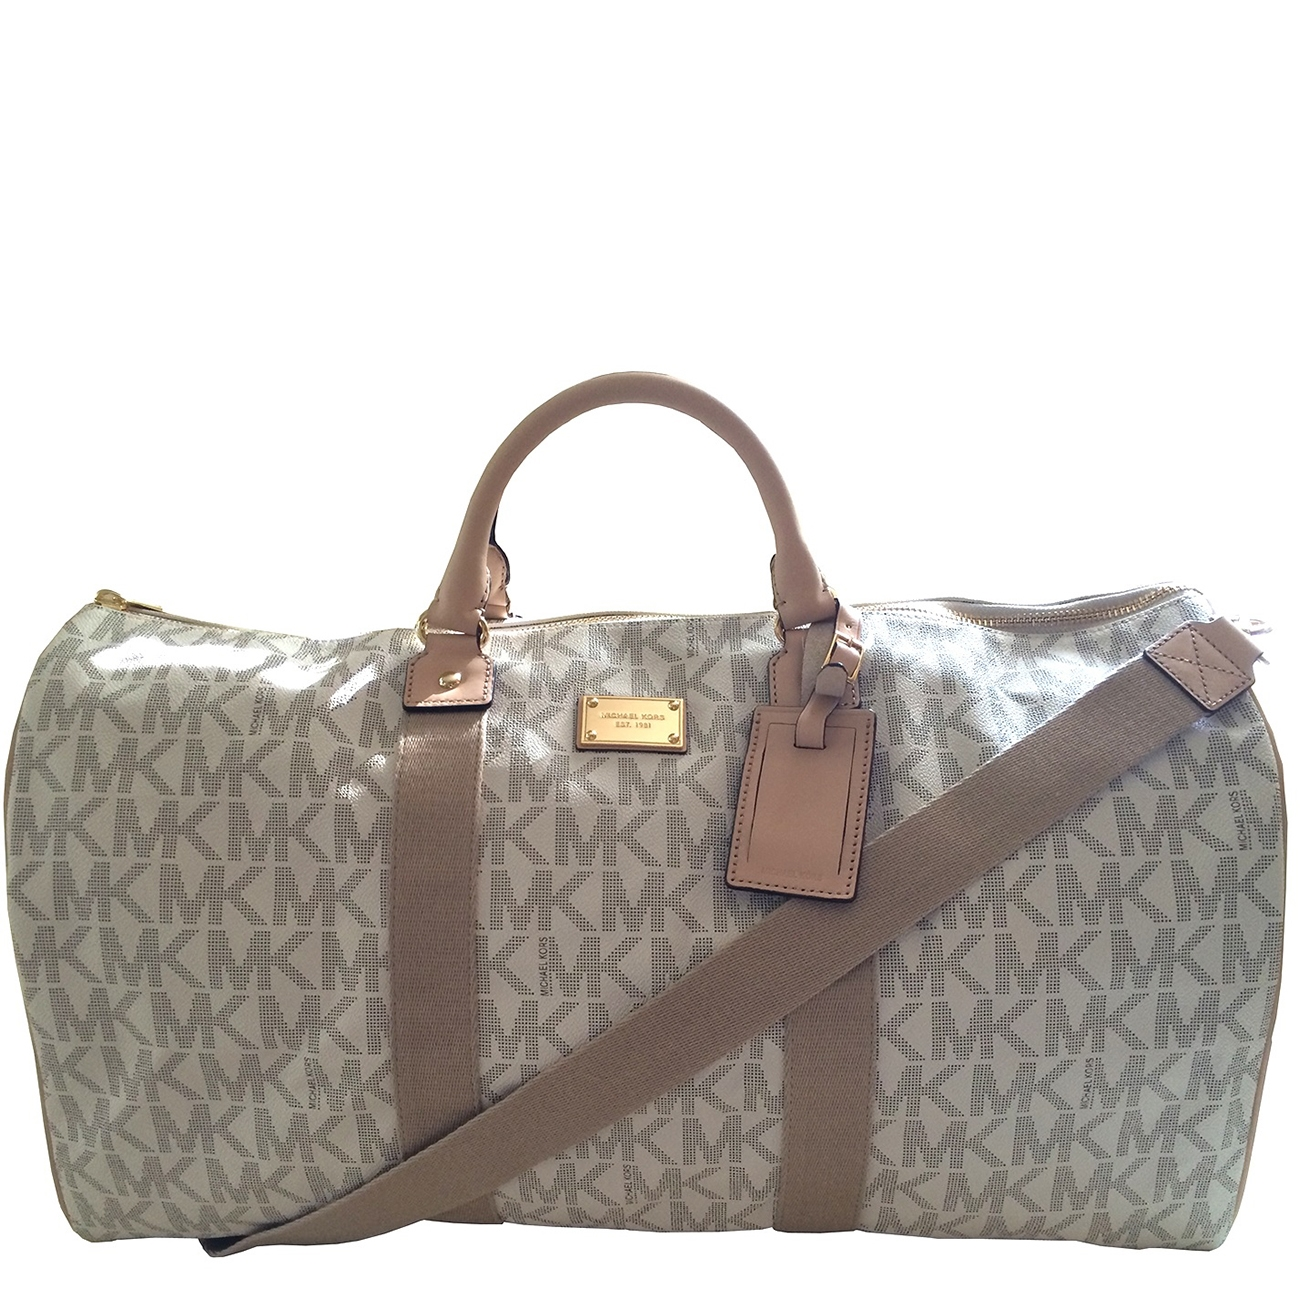 Picture Of Michael Kors Duffle Travel Luggage